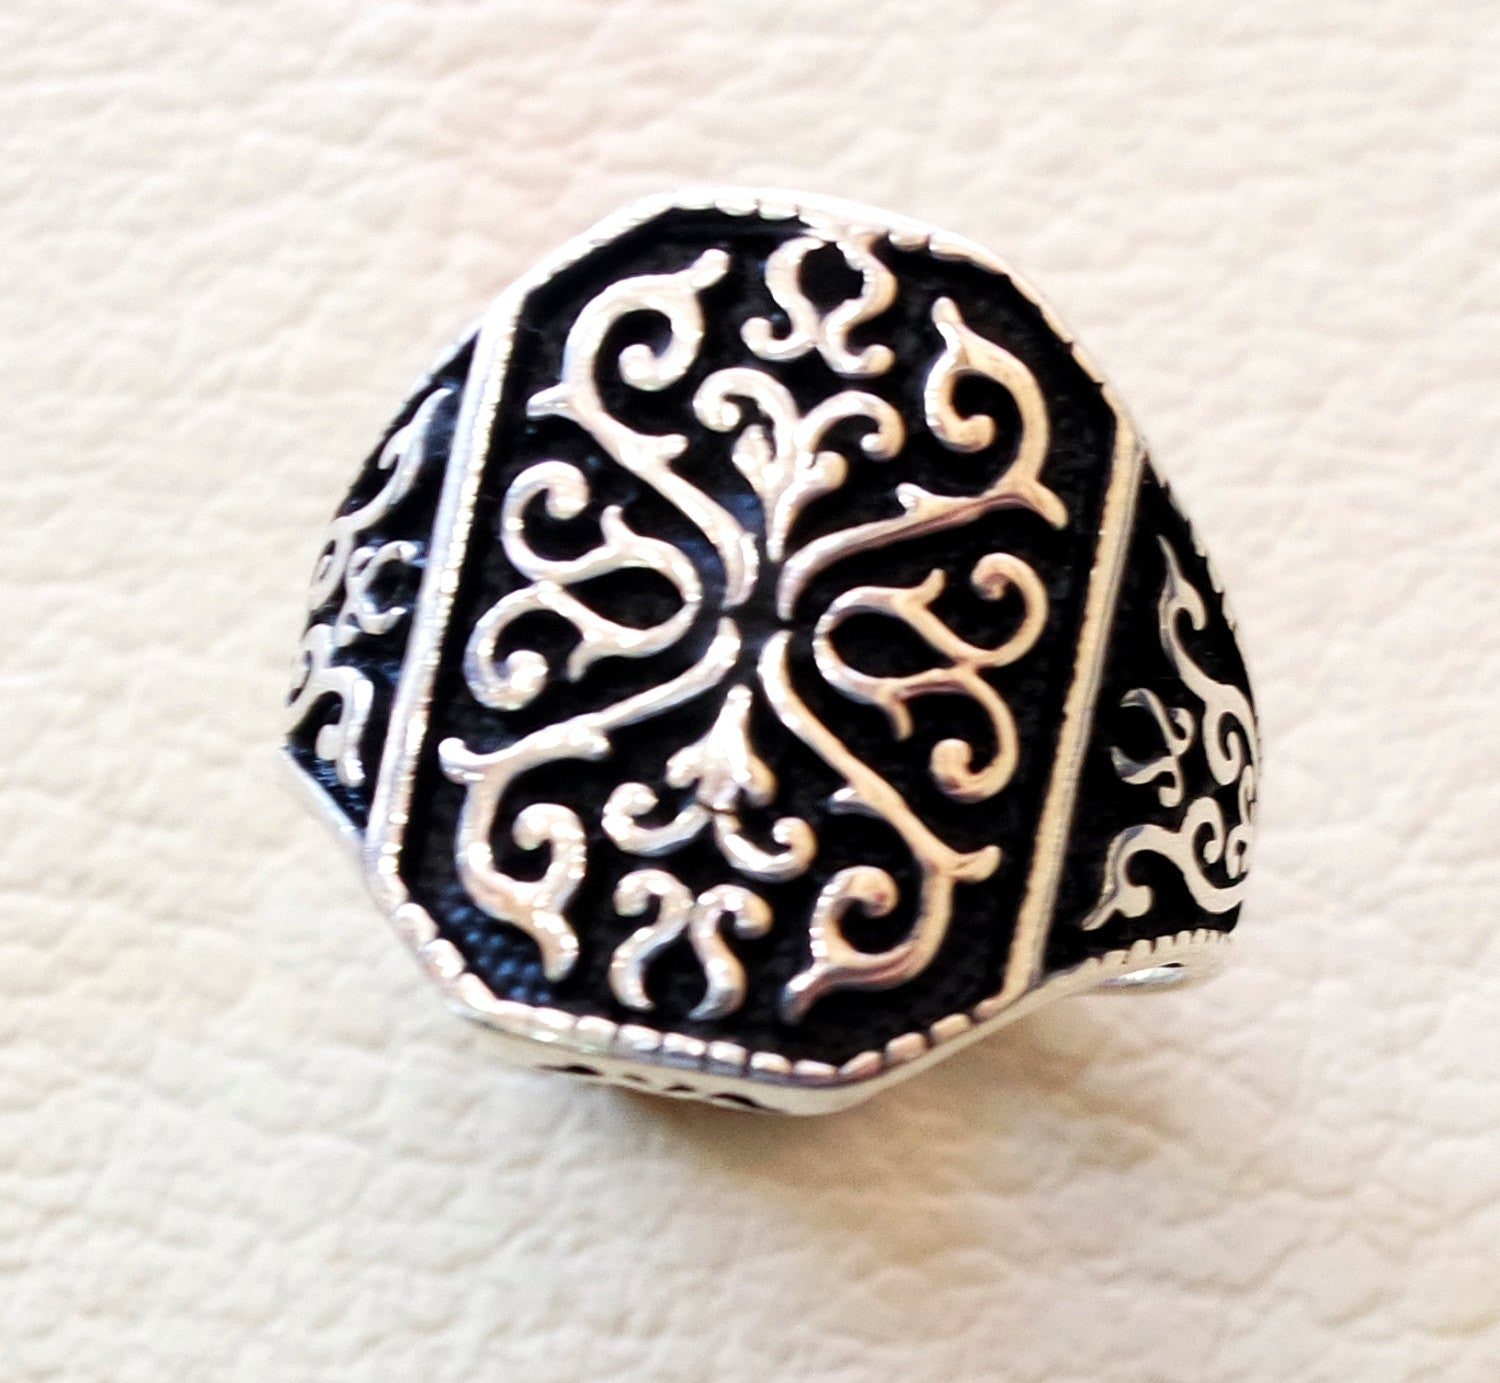 ornament man ring celtic style heavy sterling silver 925 heavy man  shape any size antique style high quality jewelry